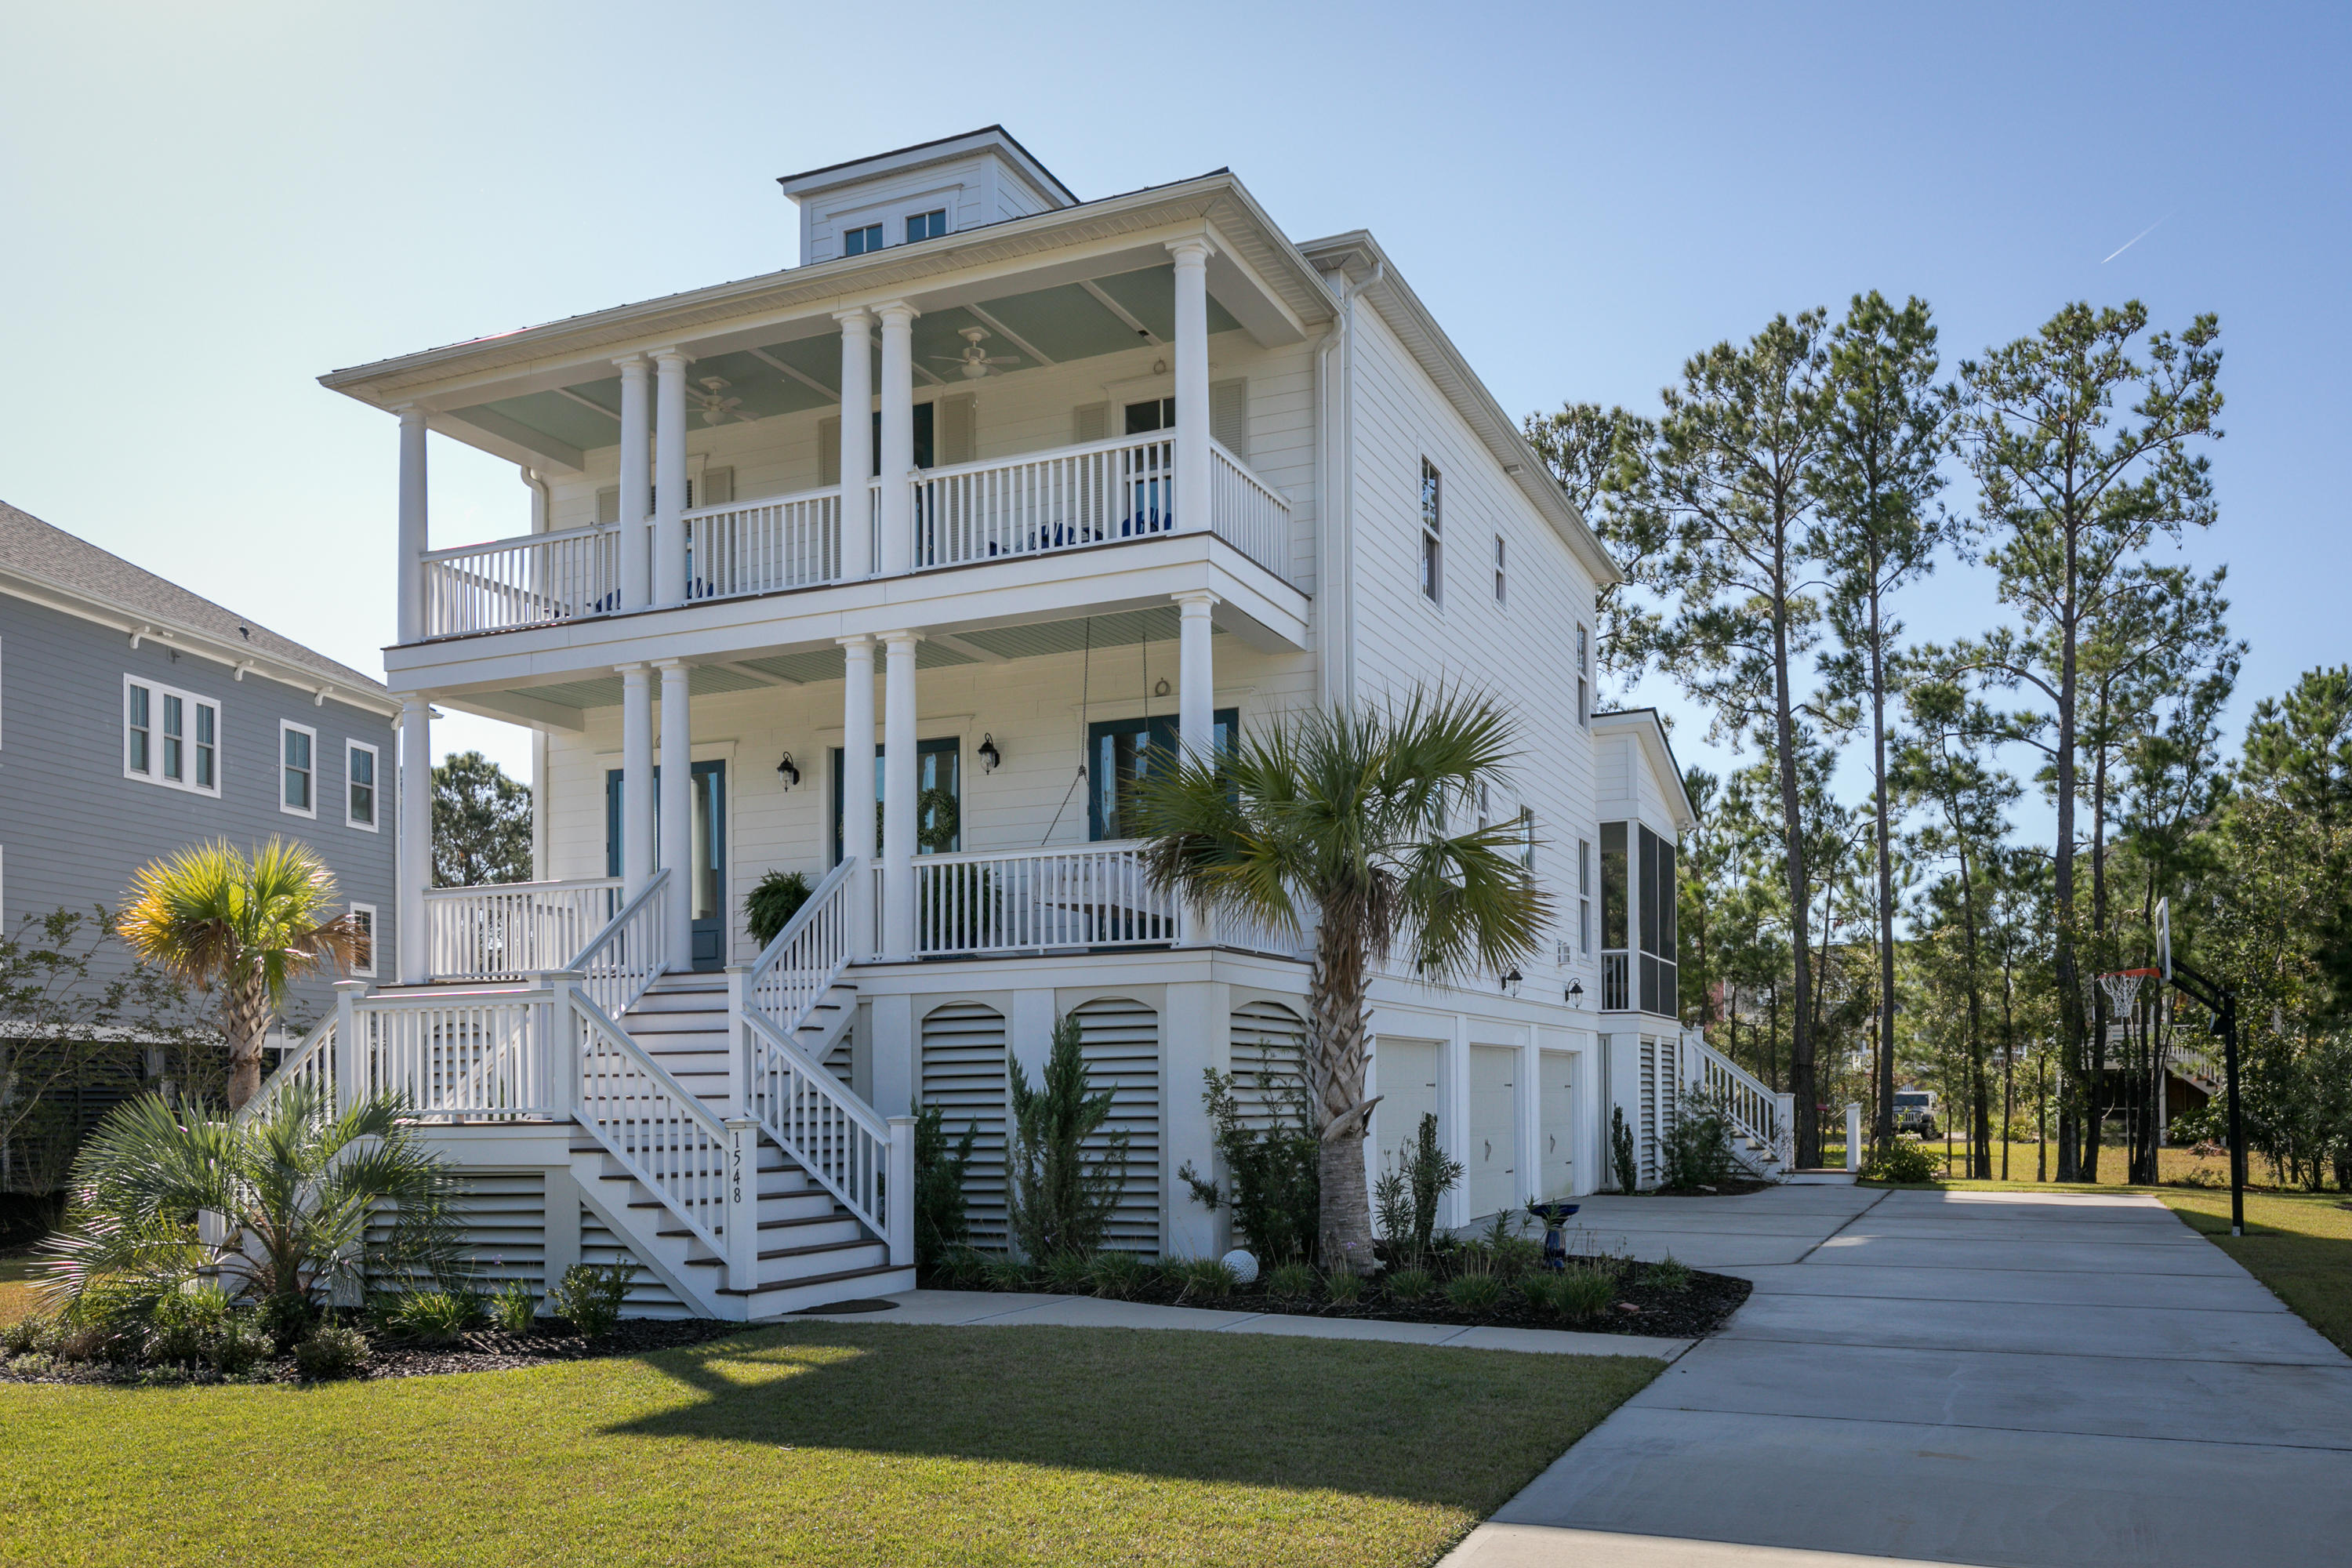 Rivertowne Country Club Homes For Sale - 1548 Rivertowne Country Club, Mount Pleasant, SC - 16